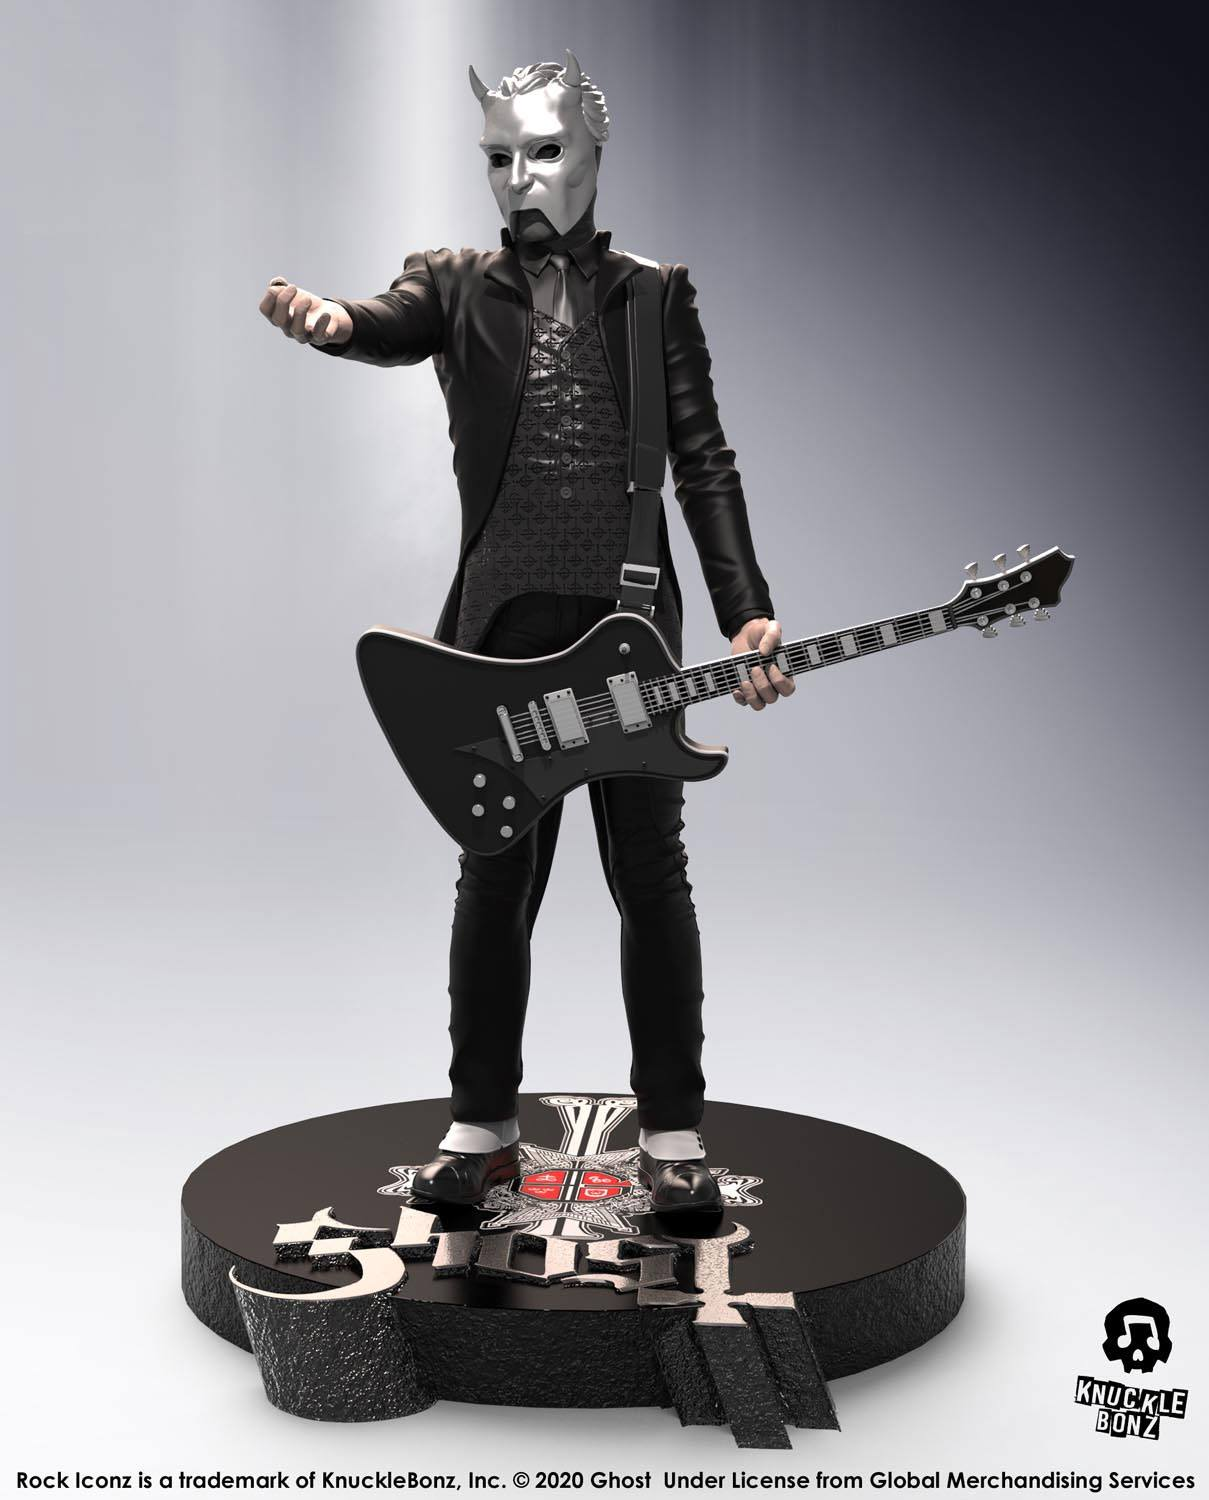 Ghost Rock Iconz Statue Nameless Ghoul (Black Guitar) Limited Edition 22 cm